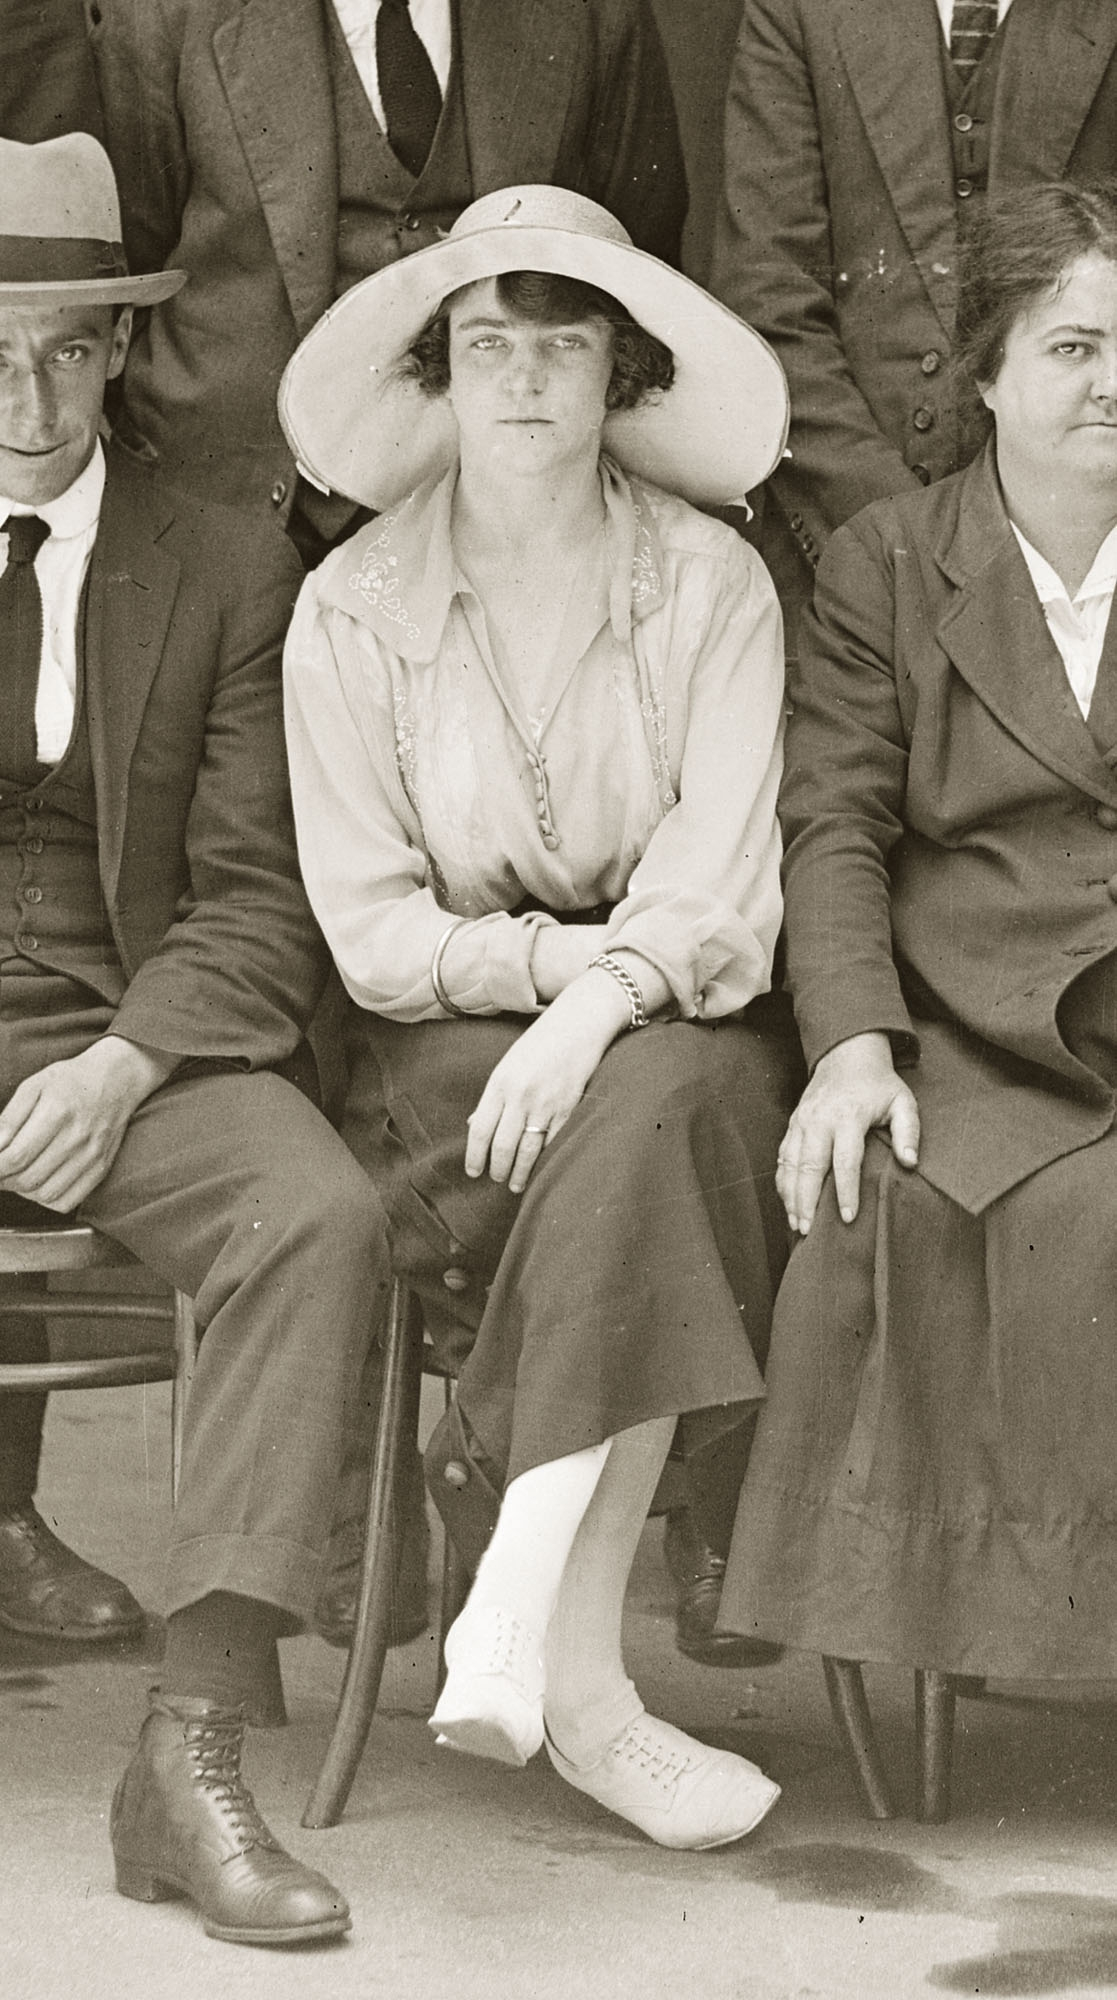 Woman in straw hat among group of seated people.